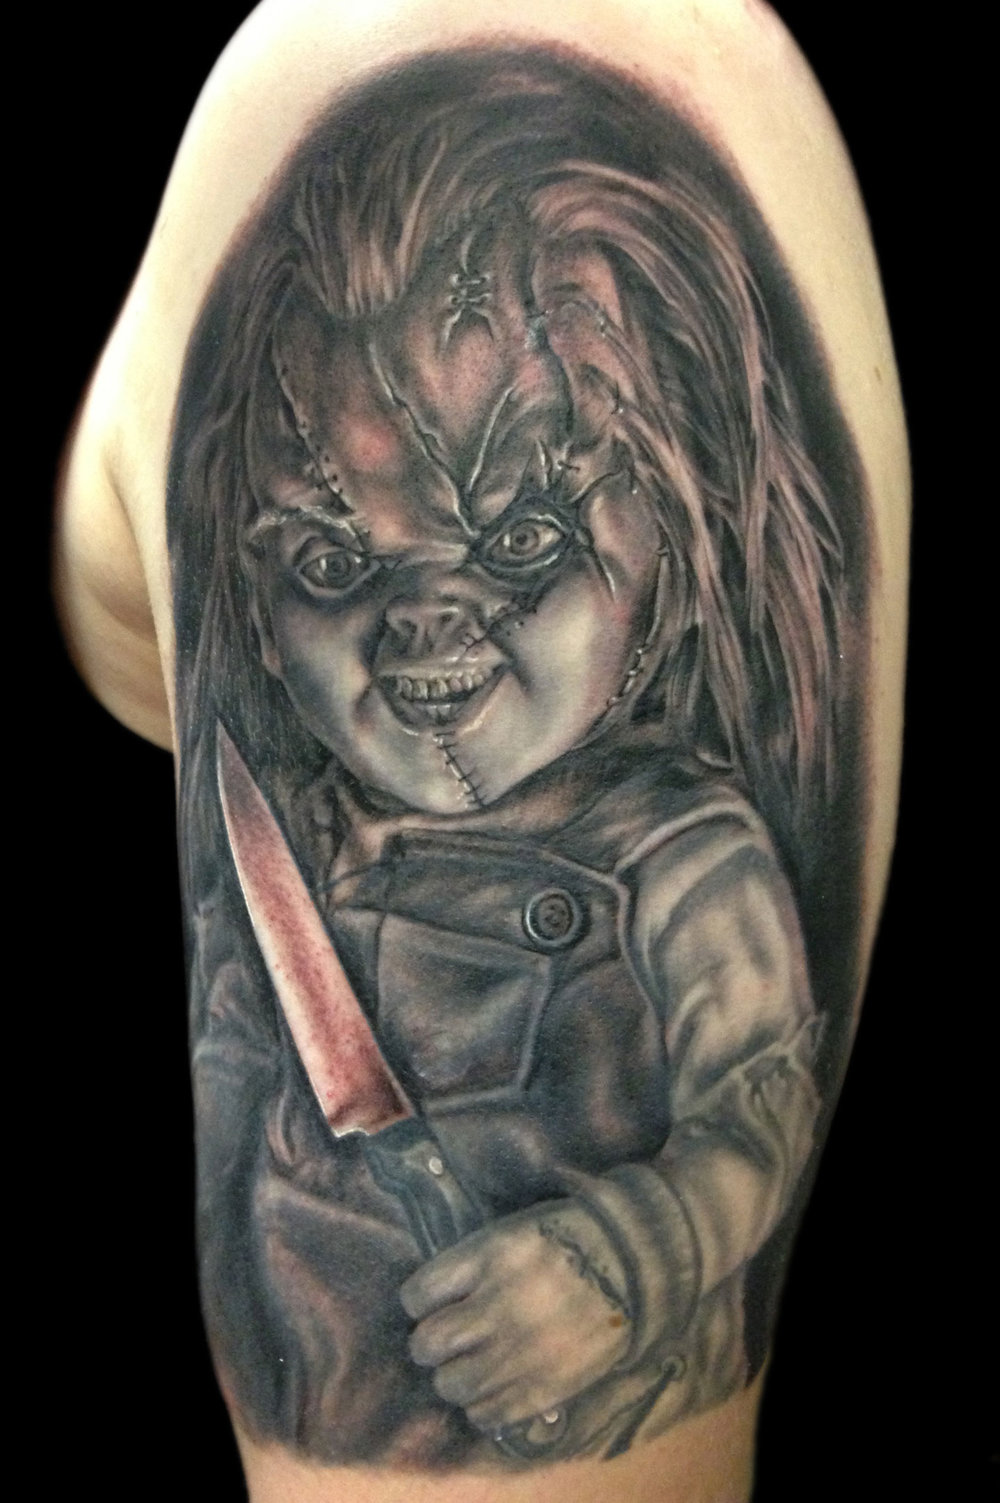 Black and Grey Chucky Child's Play Portrait Tattoo, (part fresh, part healed)